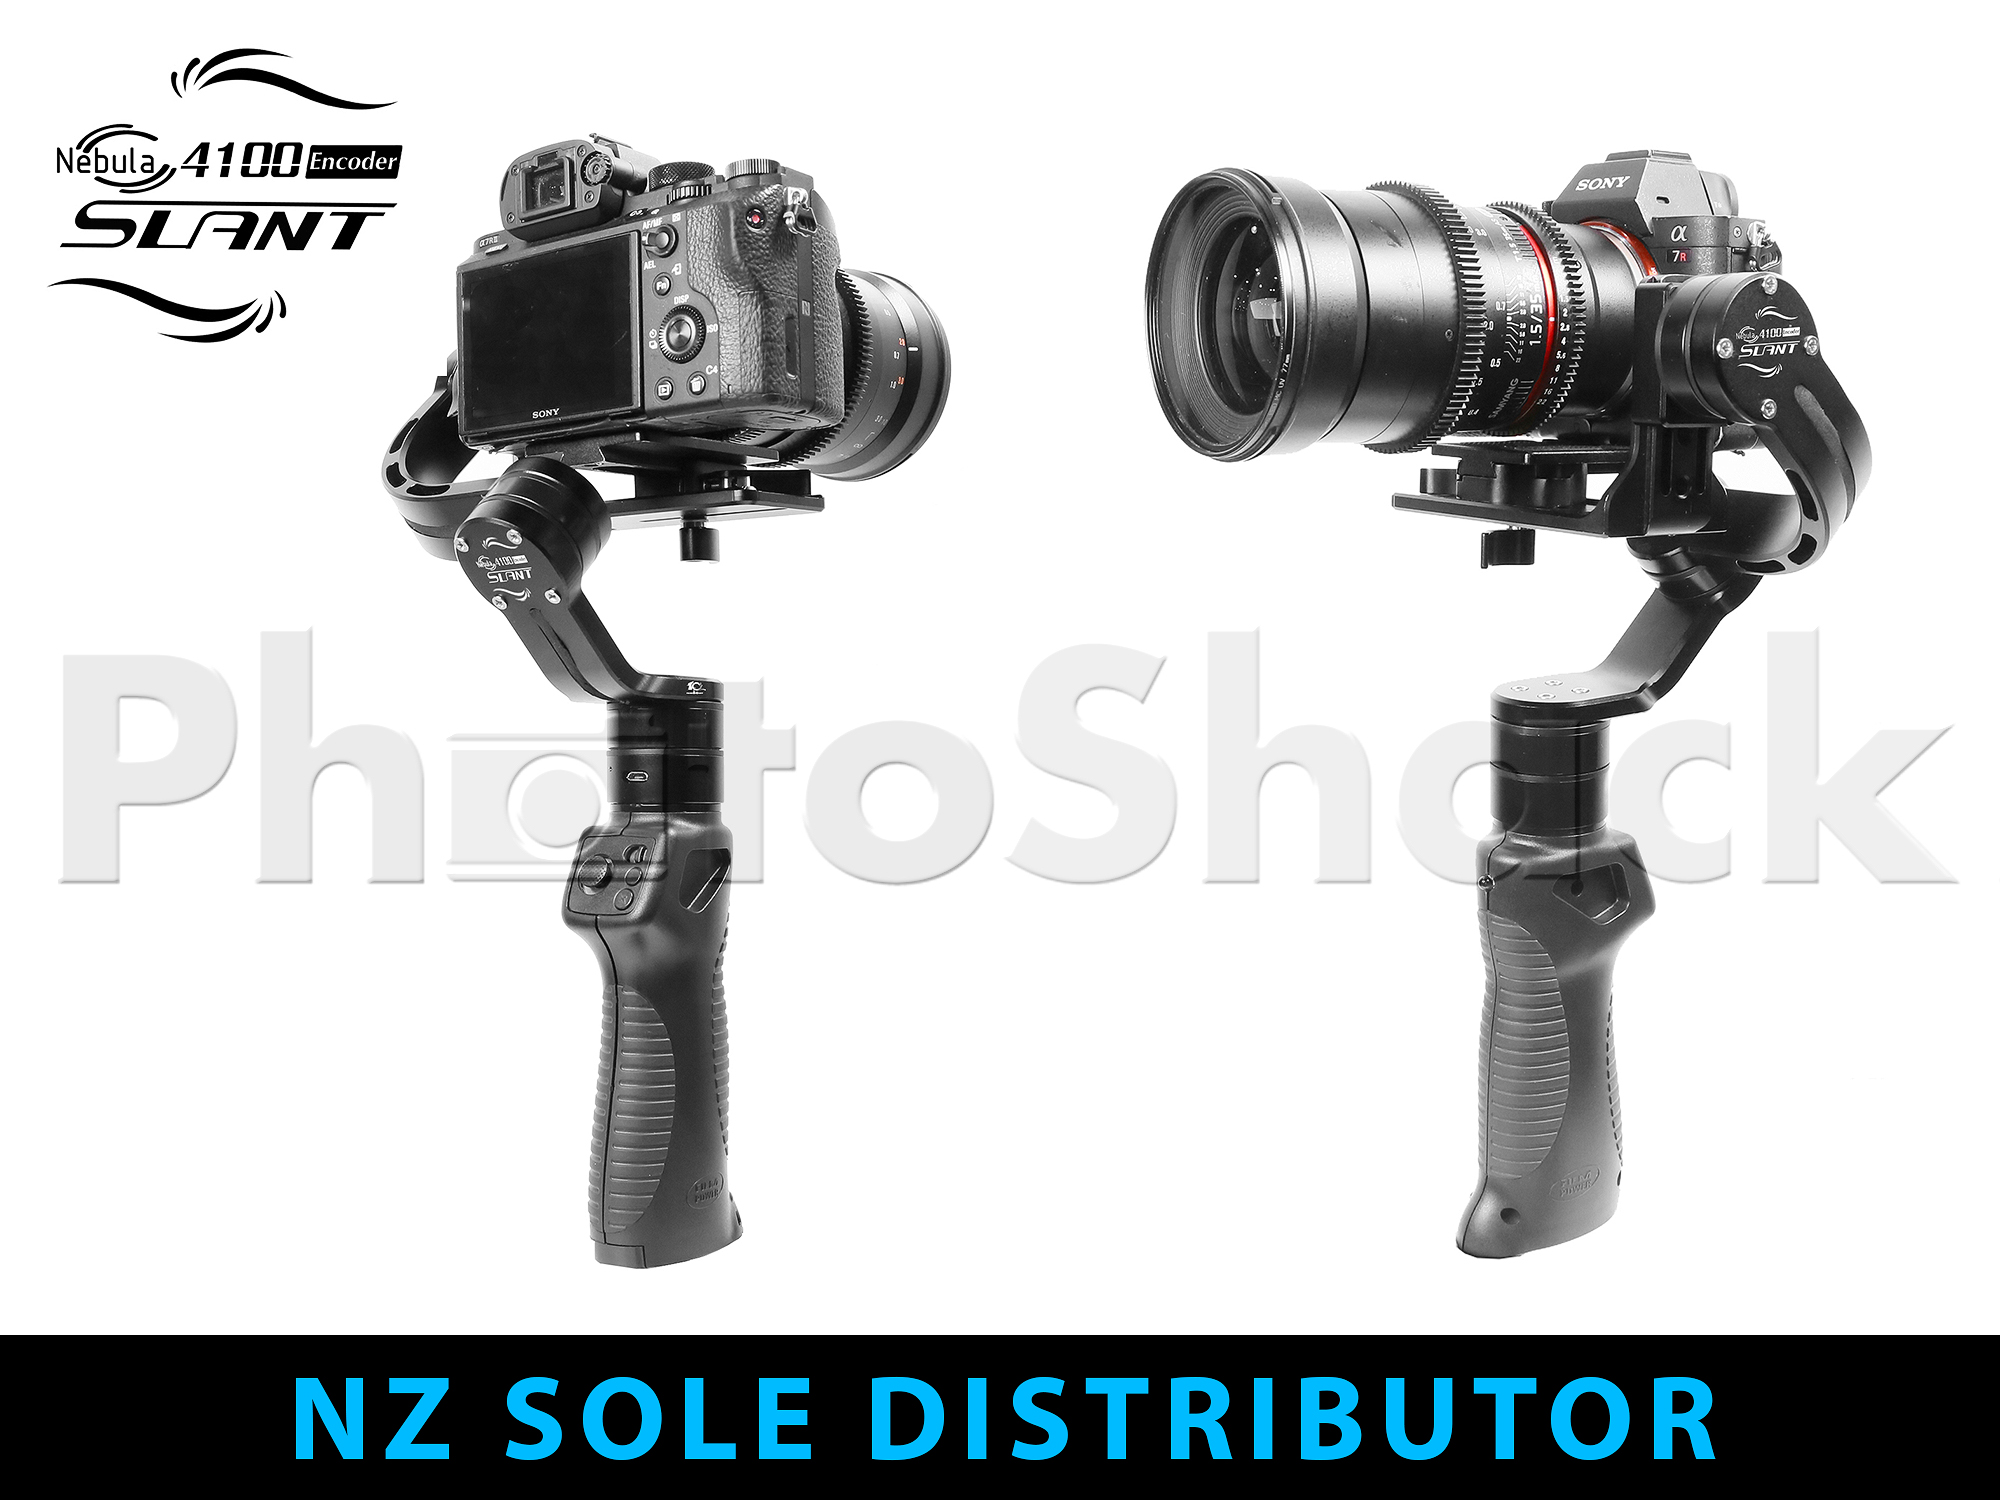 Nebula 4100 Slant 3-Axis Single Handheld Gimbal